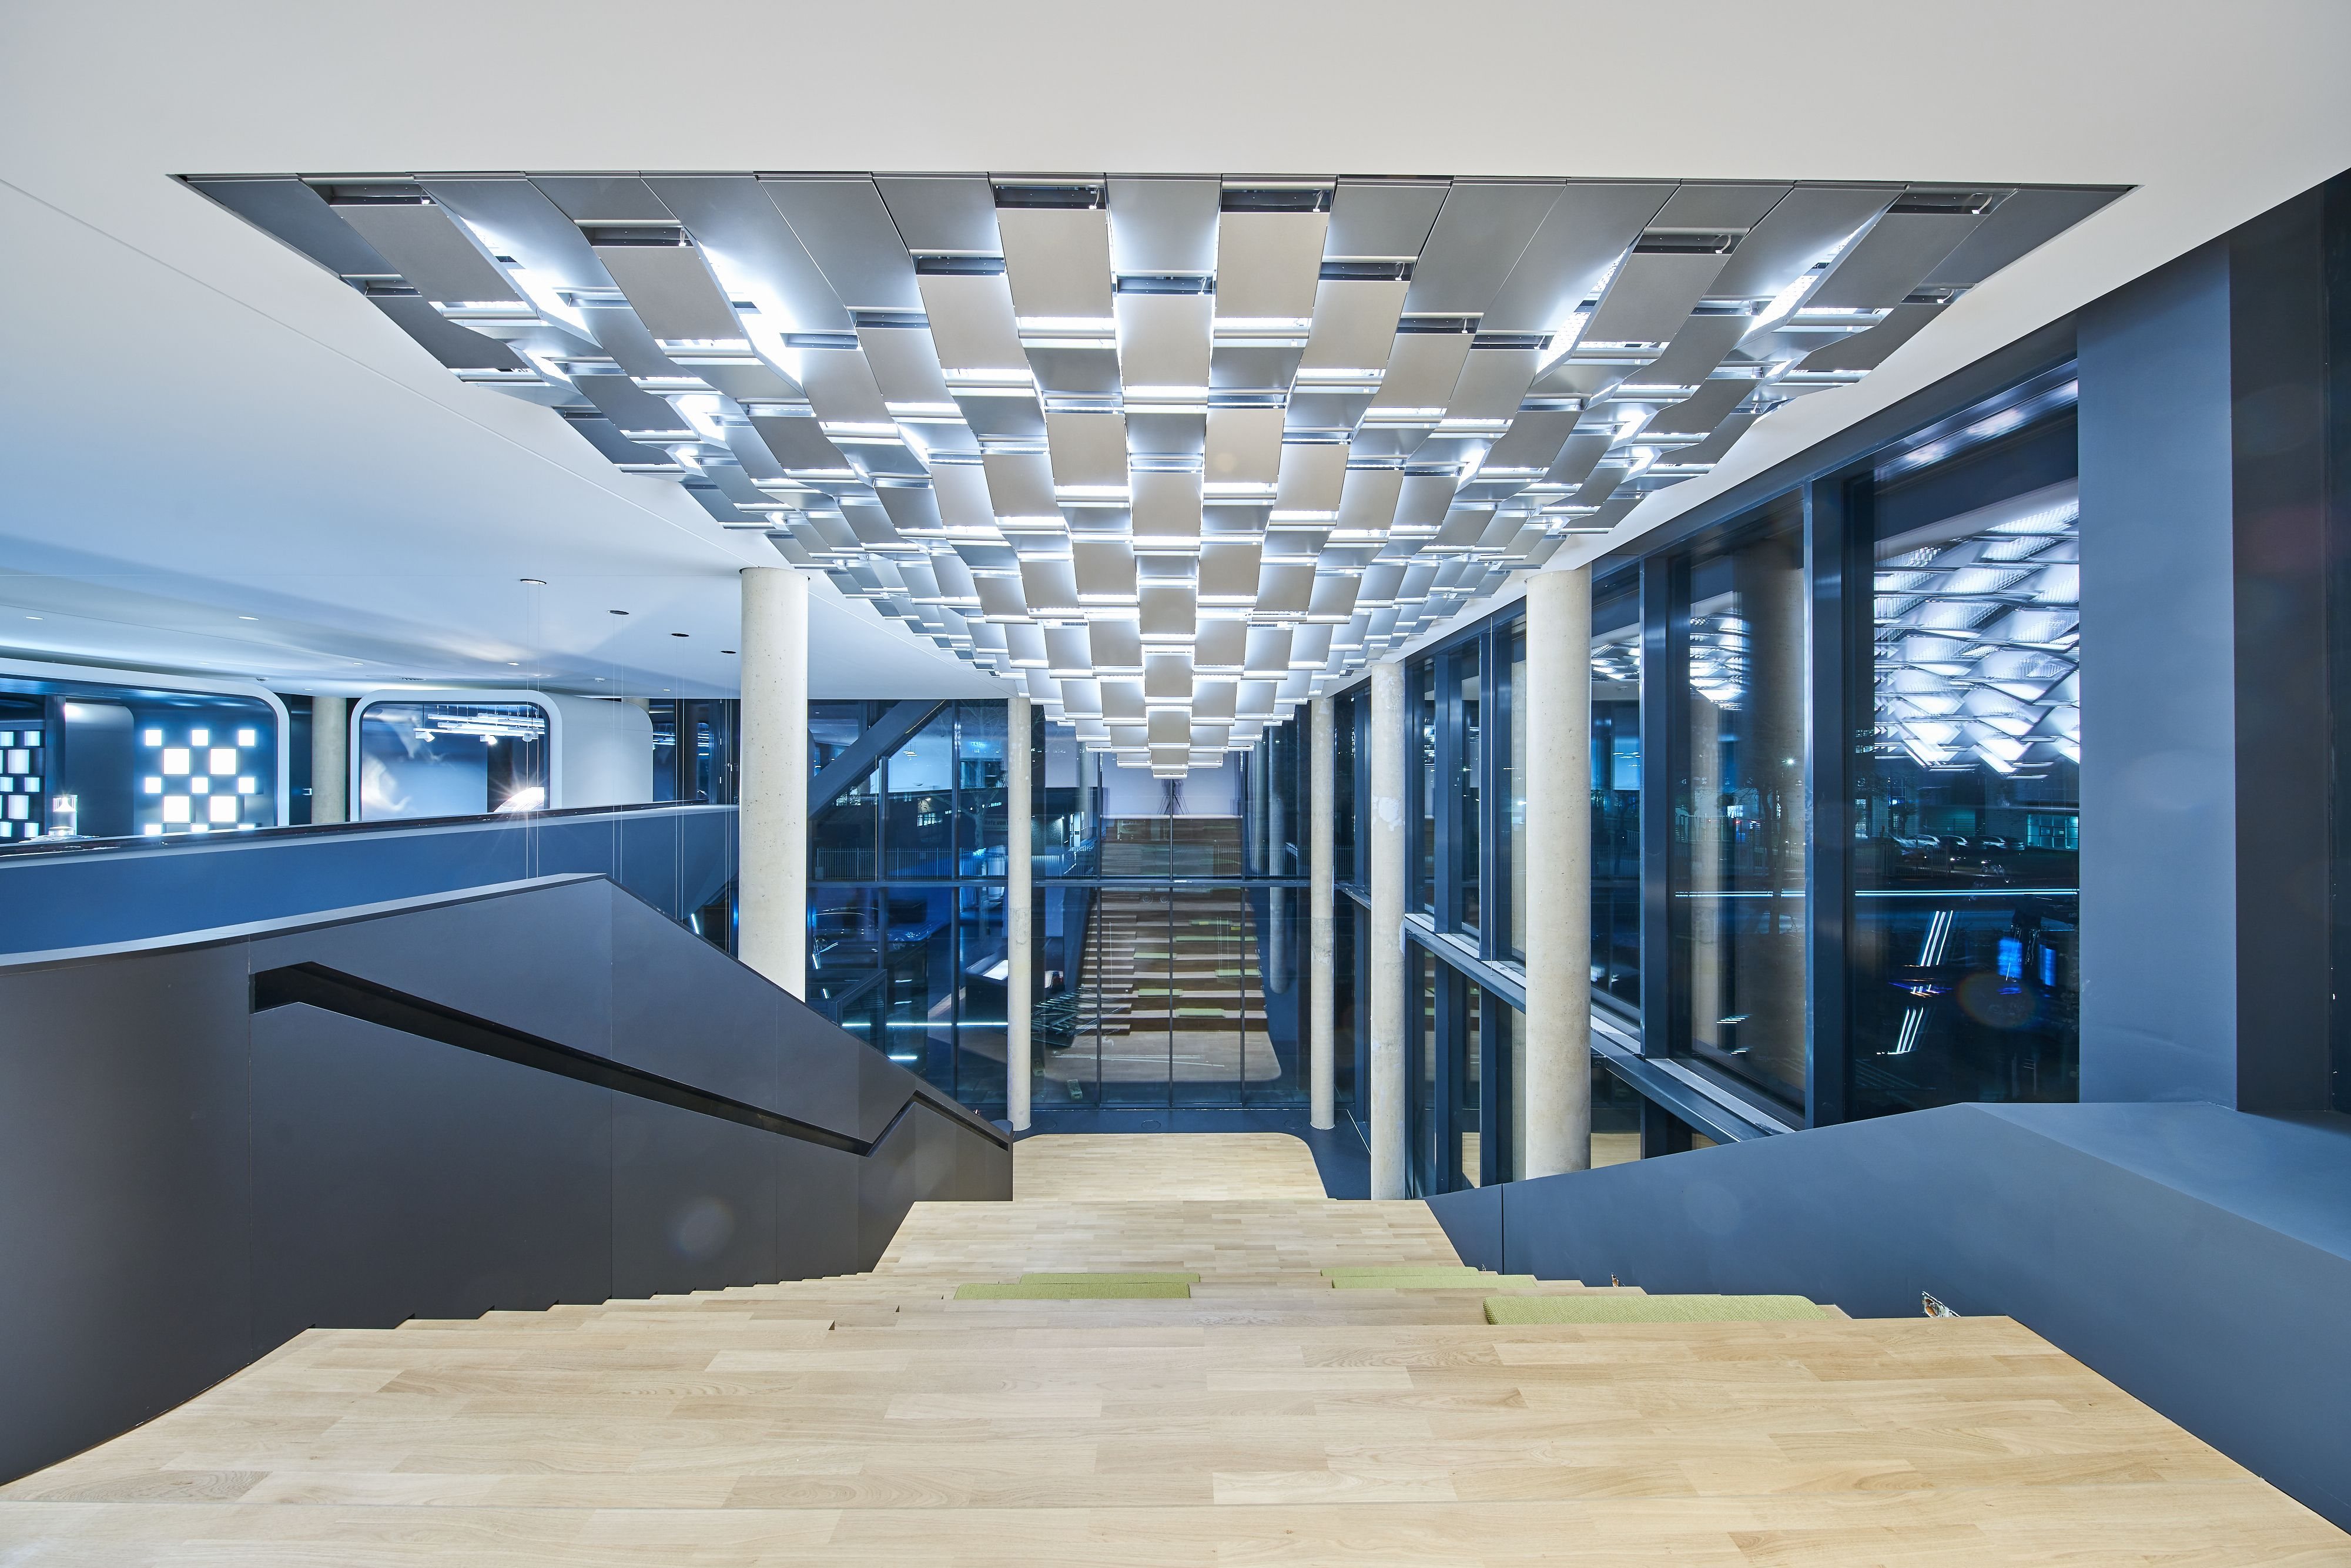 TRILUX LIGHT CAMPUS Project type: Office Building     Location: Cologne, Germany     Client: Trilux GmbH & Co KG     Time: 2017-2019     Size: 2,794m2     Photos: Trilux  GRAFT designed the new campus of the German lighting company TRILUX in Cologne. The design of the rectangular building is strongly inspired by the client's craft: light, refraction and reflections are reflected – in the truest sense of the word – throughout the building and its design embodies the precision of lamp manufacture. The continuous, staggered glass façade presents a changing pattern of reflections from different viewpoints and draws inspiration from the aesthetics of spotlight reflectors, which optimize the optical distribution of the light source. To achieve this, each façade module is rotated at the same angle about its central axis. The overall impression is of a monolithic building that produces different light and depth effects depending on the point of view.